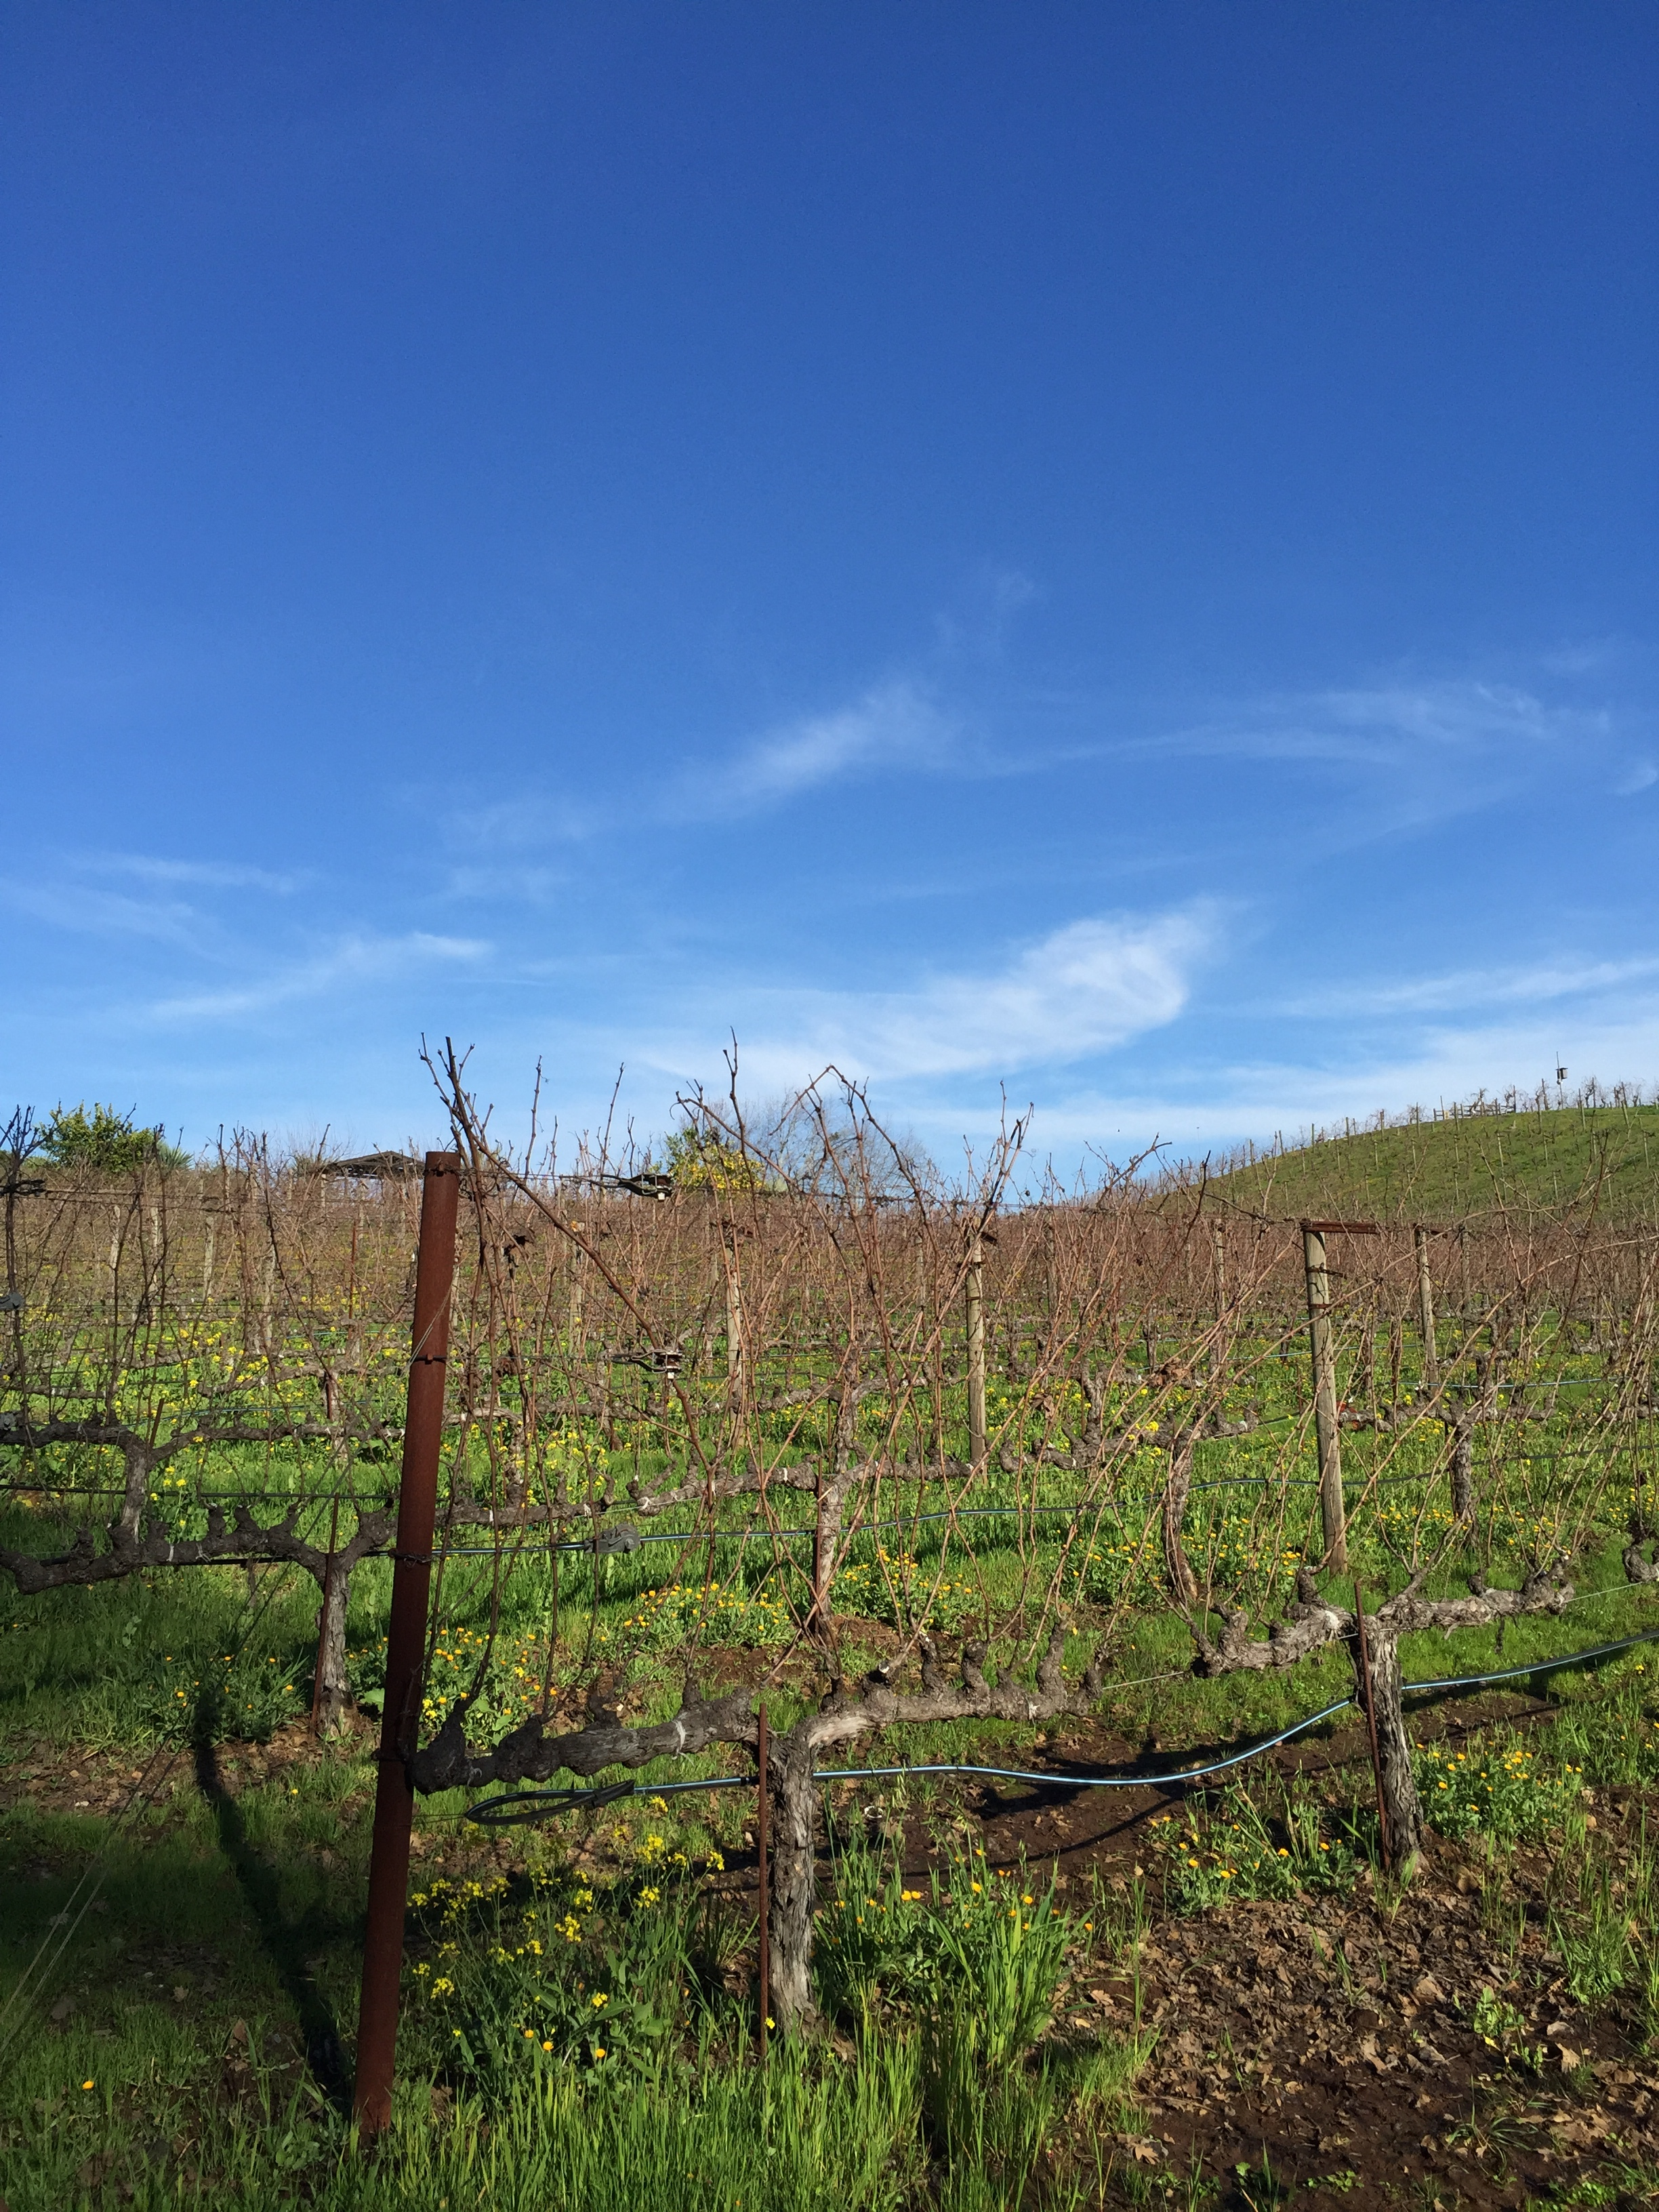 Mustard growing within the vines builds soil fertility